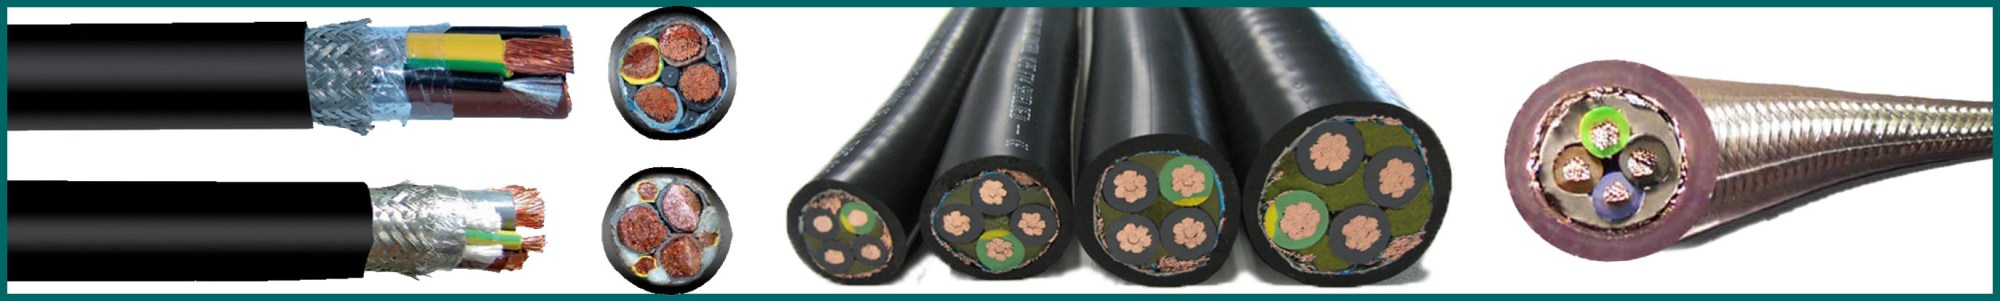 hight resolution of  part of adjustable speed drive systems and servo drive systems shall be listed flexible motor supply cable marked rhh rhw rhw 2 xhh xhhw or xhhw 2